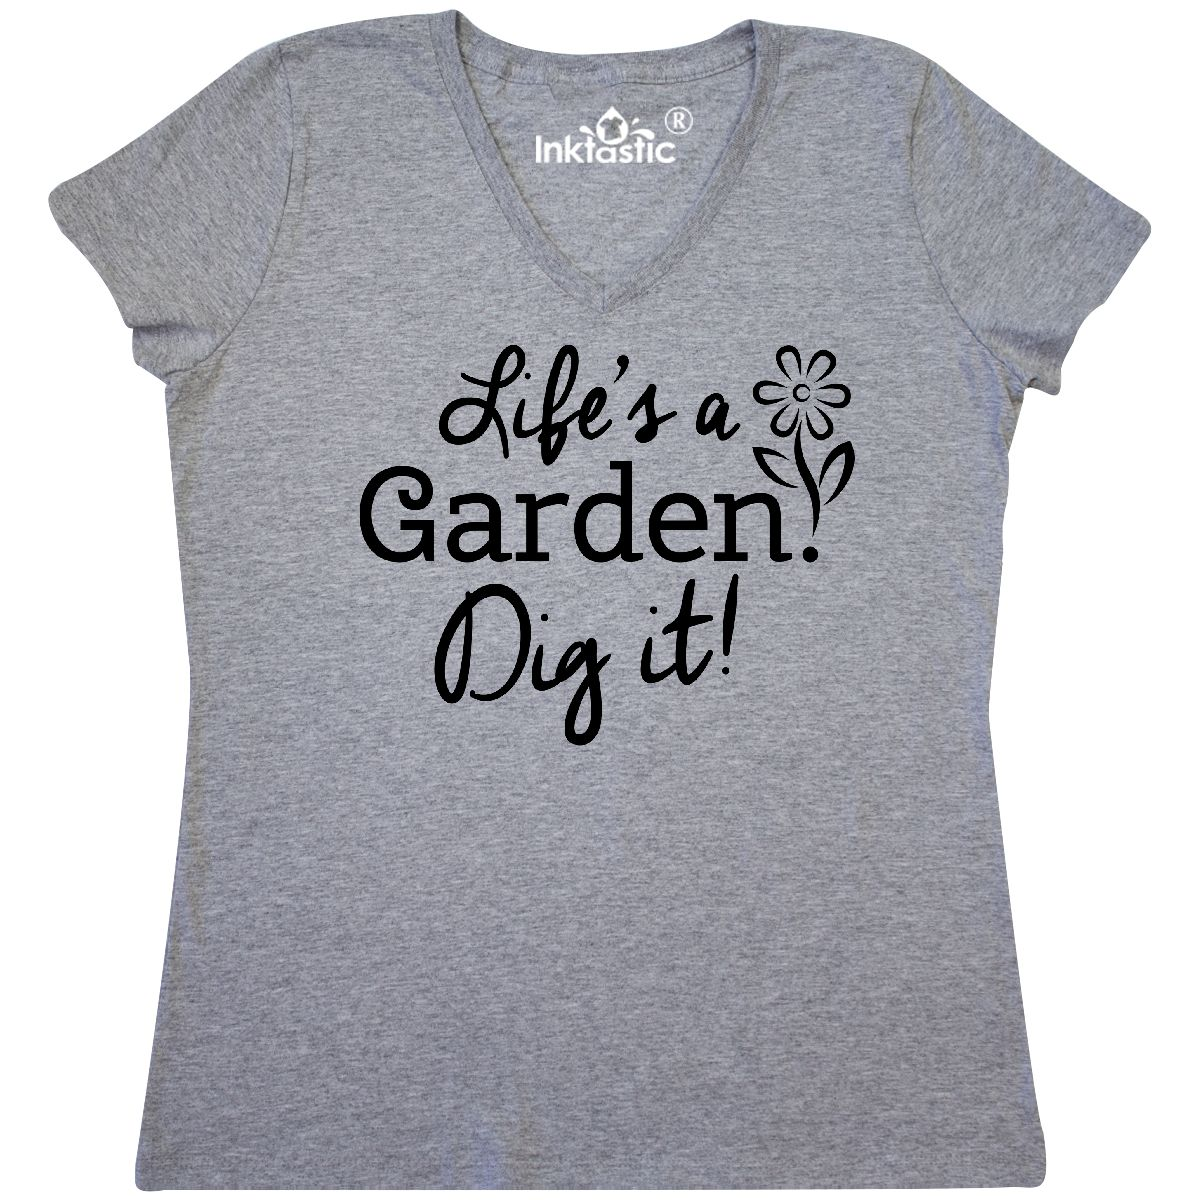 picture 3 of 4 - Lifes A Garden Dig It